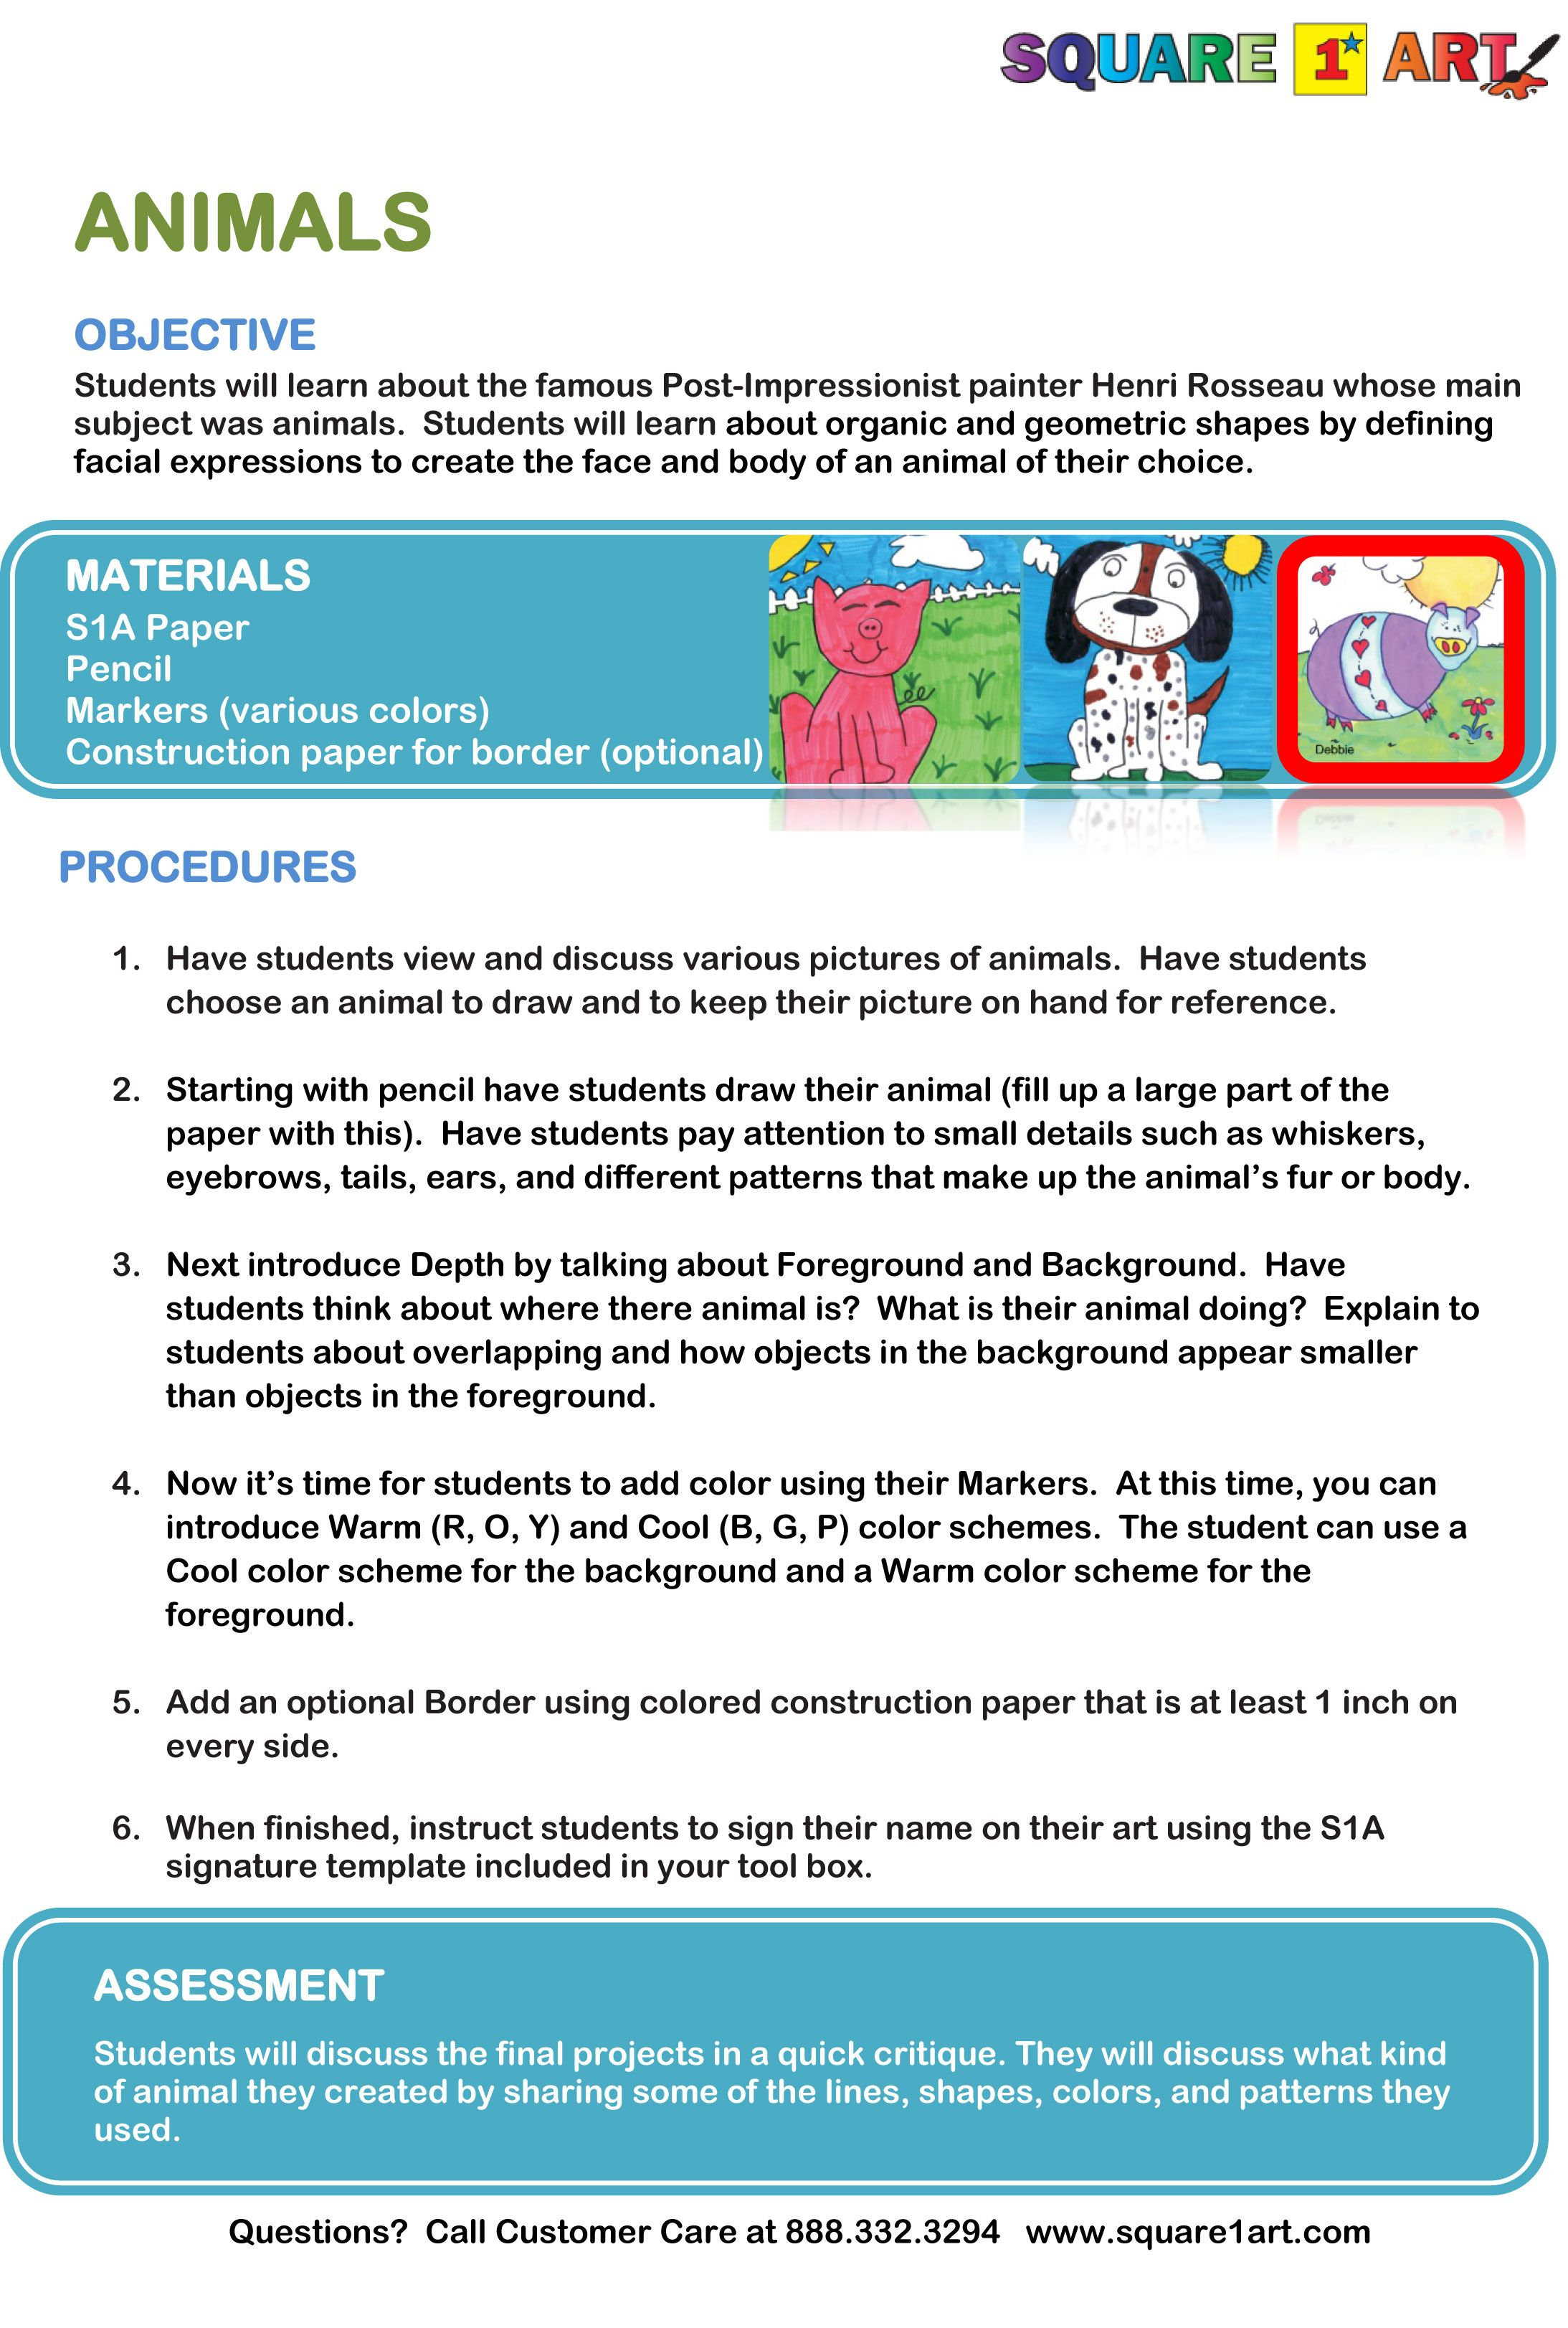 How To Draw Animals Lesson Plan Www Square1art Com Collaborative Art Projects For Kids Collaborative Art Projects Art Education Lessons